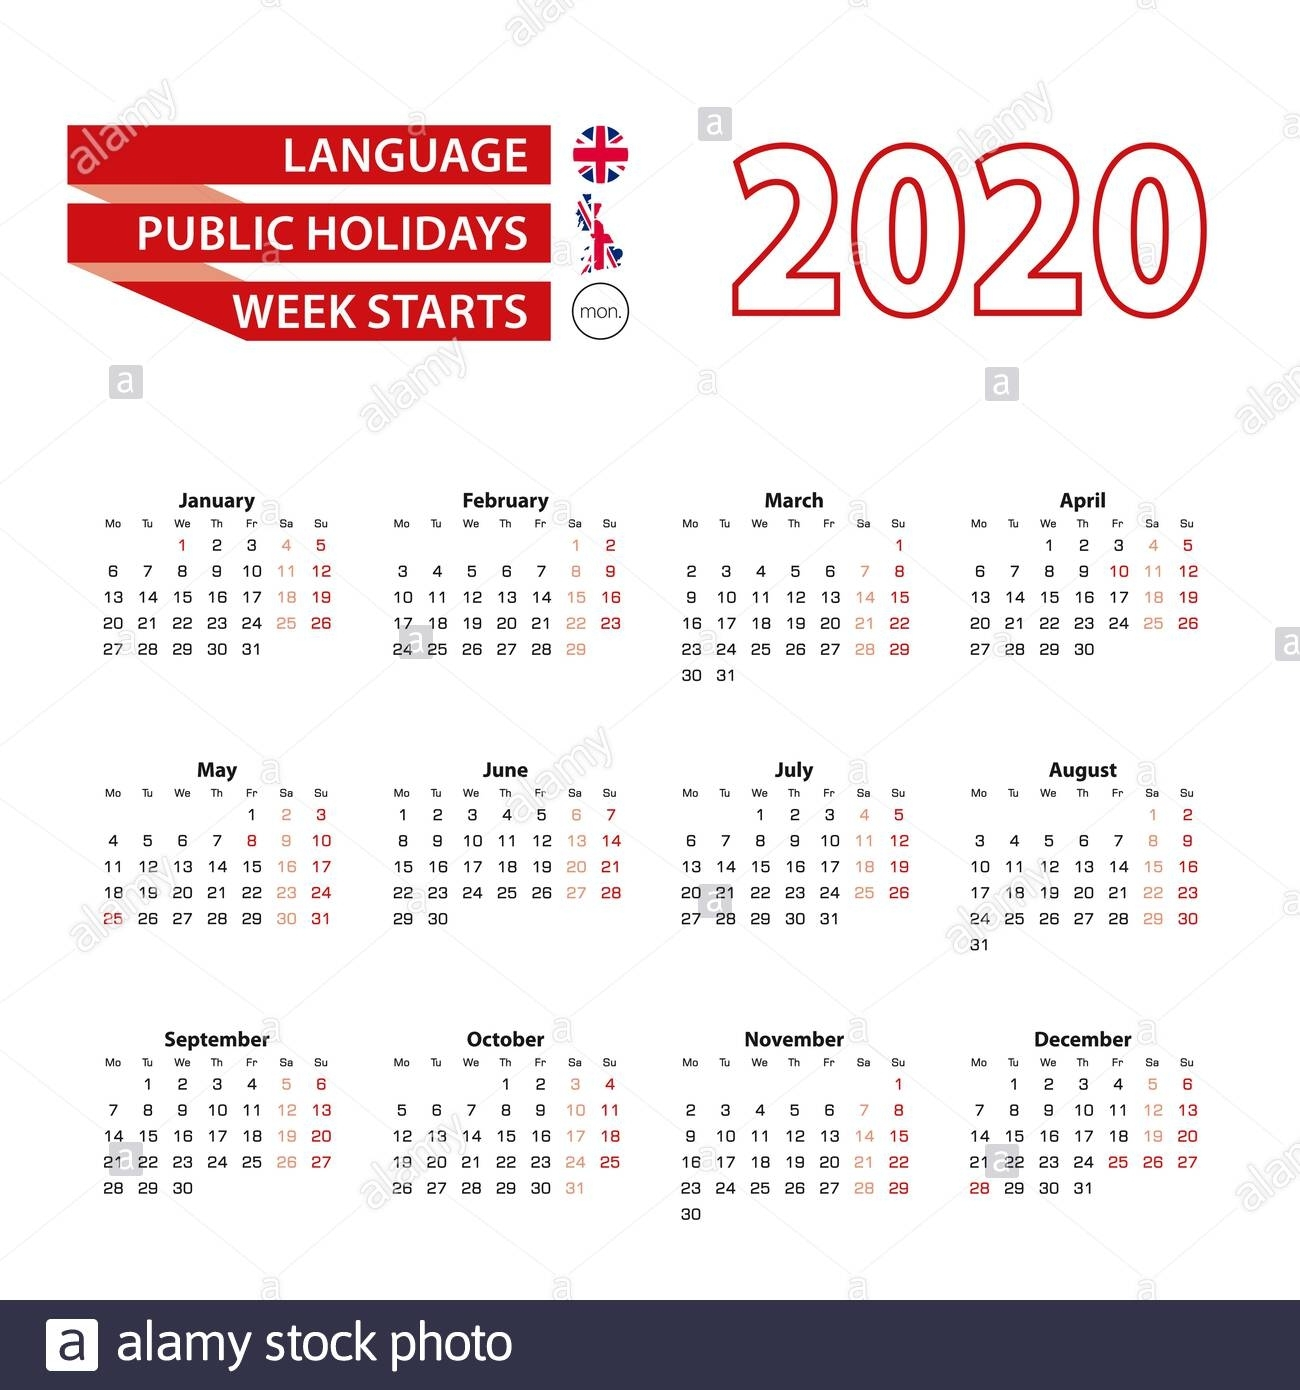 Calendar 2020 In English Language With Public Holidays Of